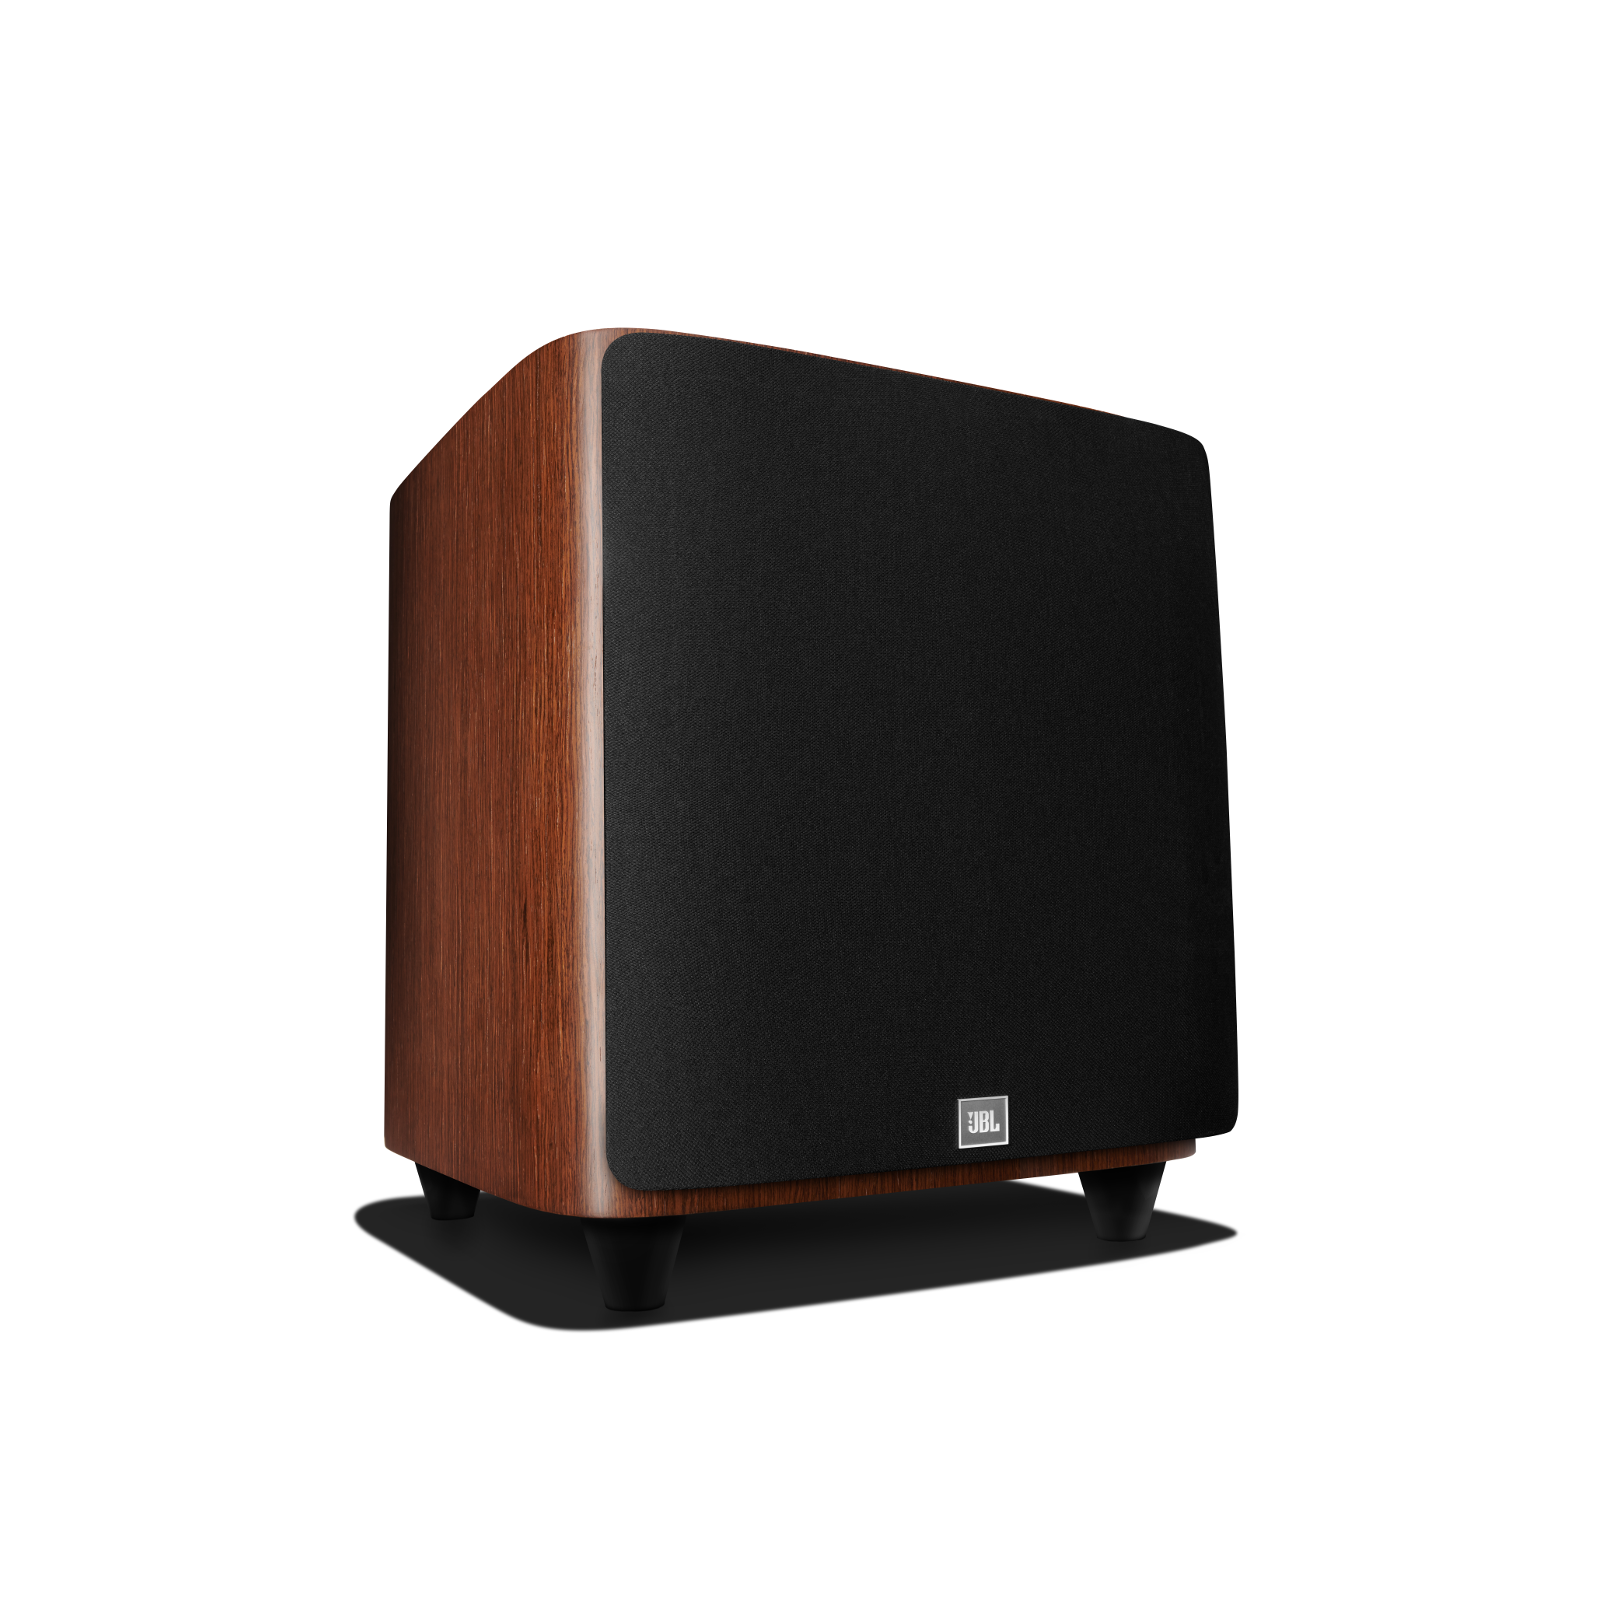 HDI-1200P - Walnut - 12-inch (300mm) 1000W Powered Subwoofer - Front